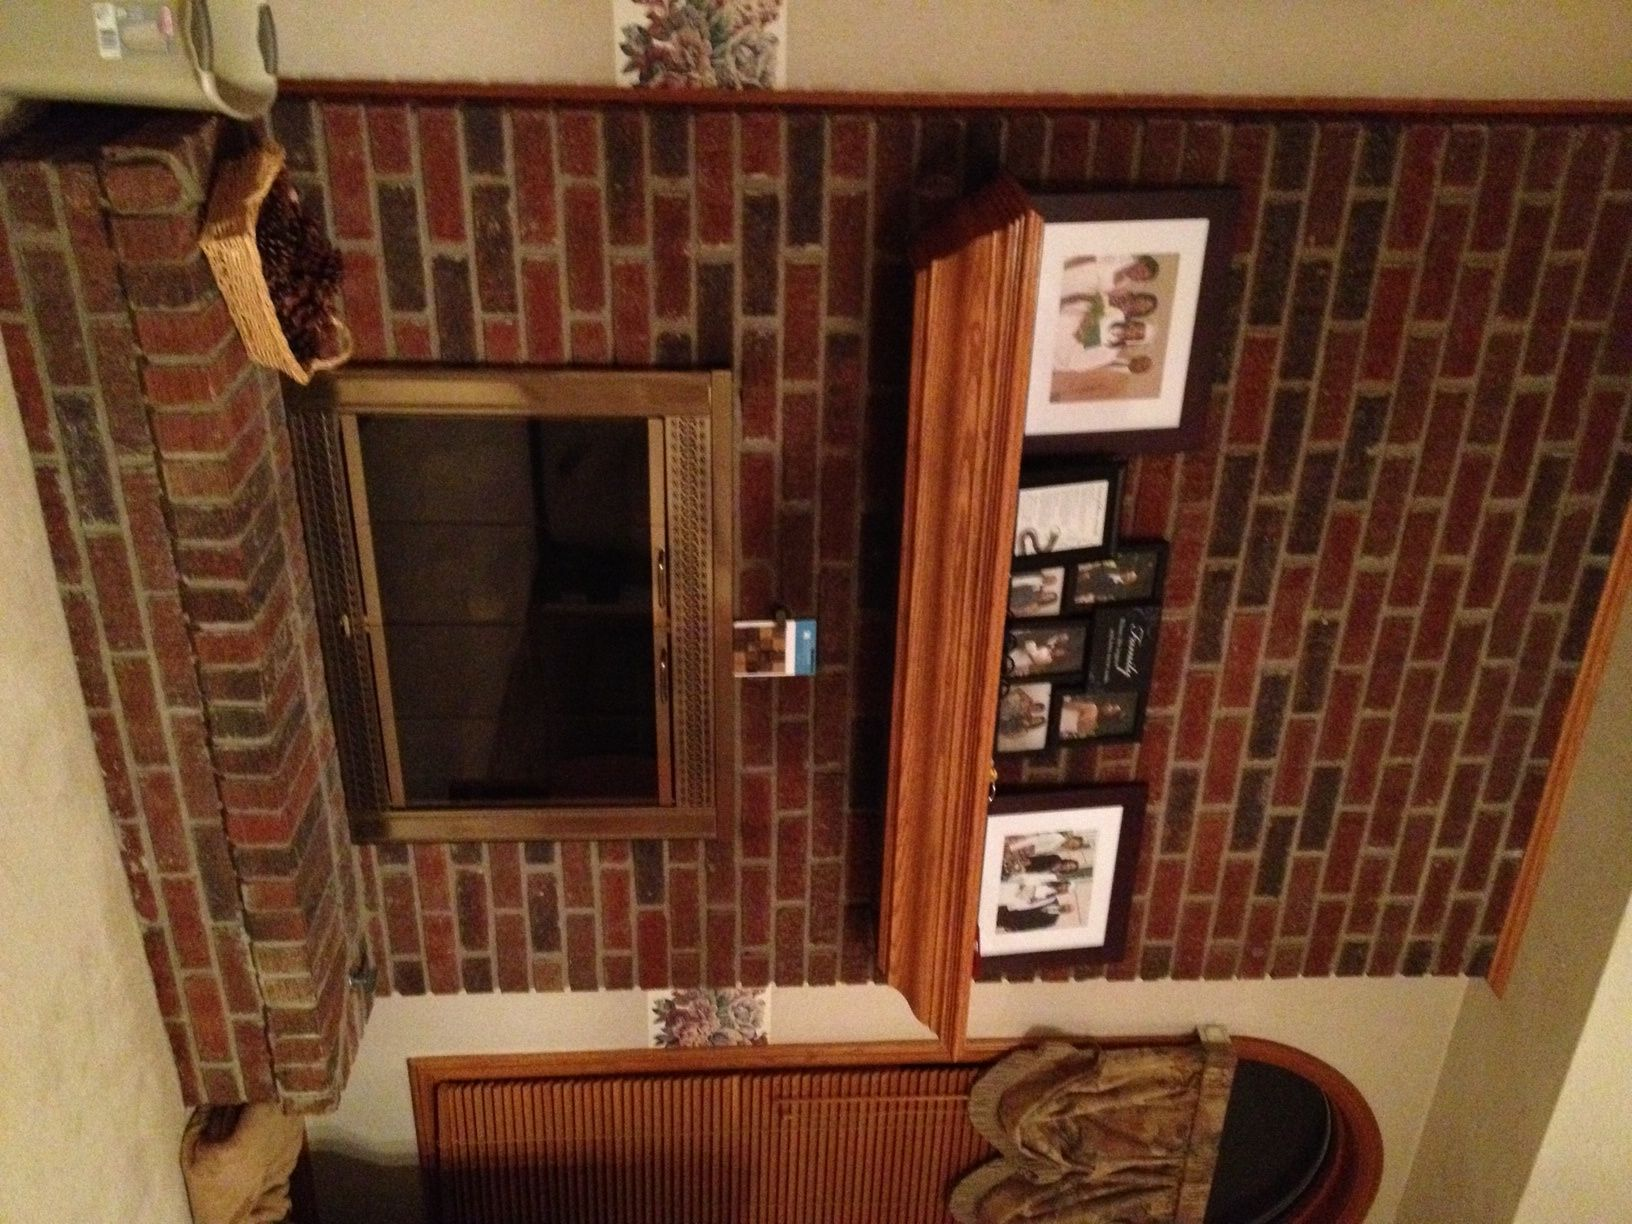 brick remodel chalkboard makeover fifth achalkboardbrickfireplacemakeover fireplace house our